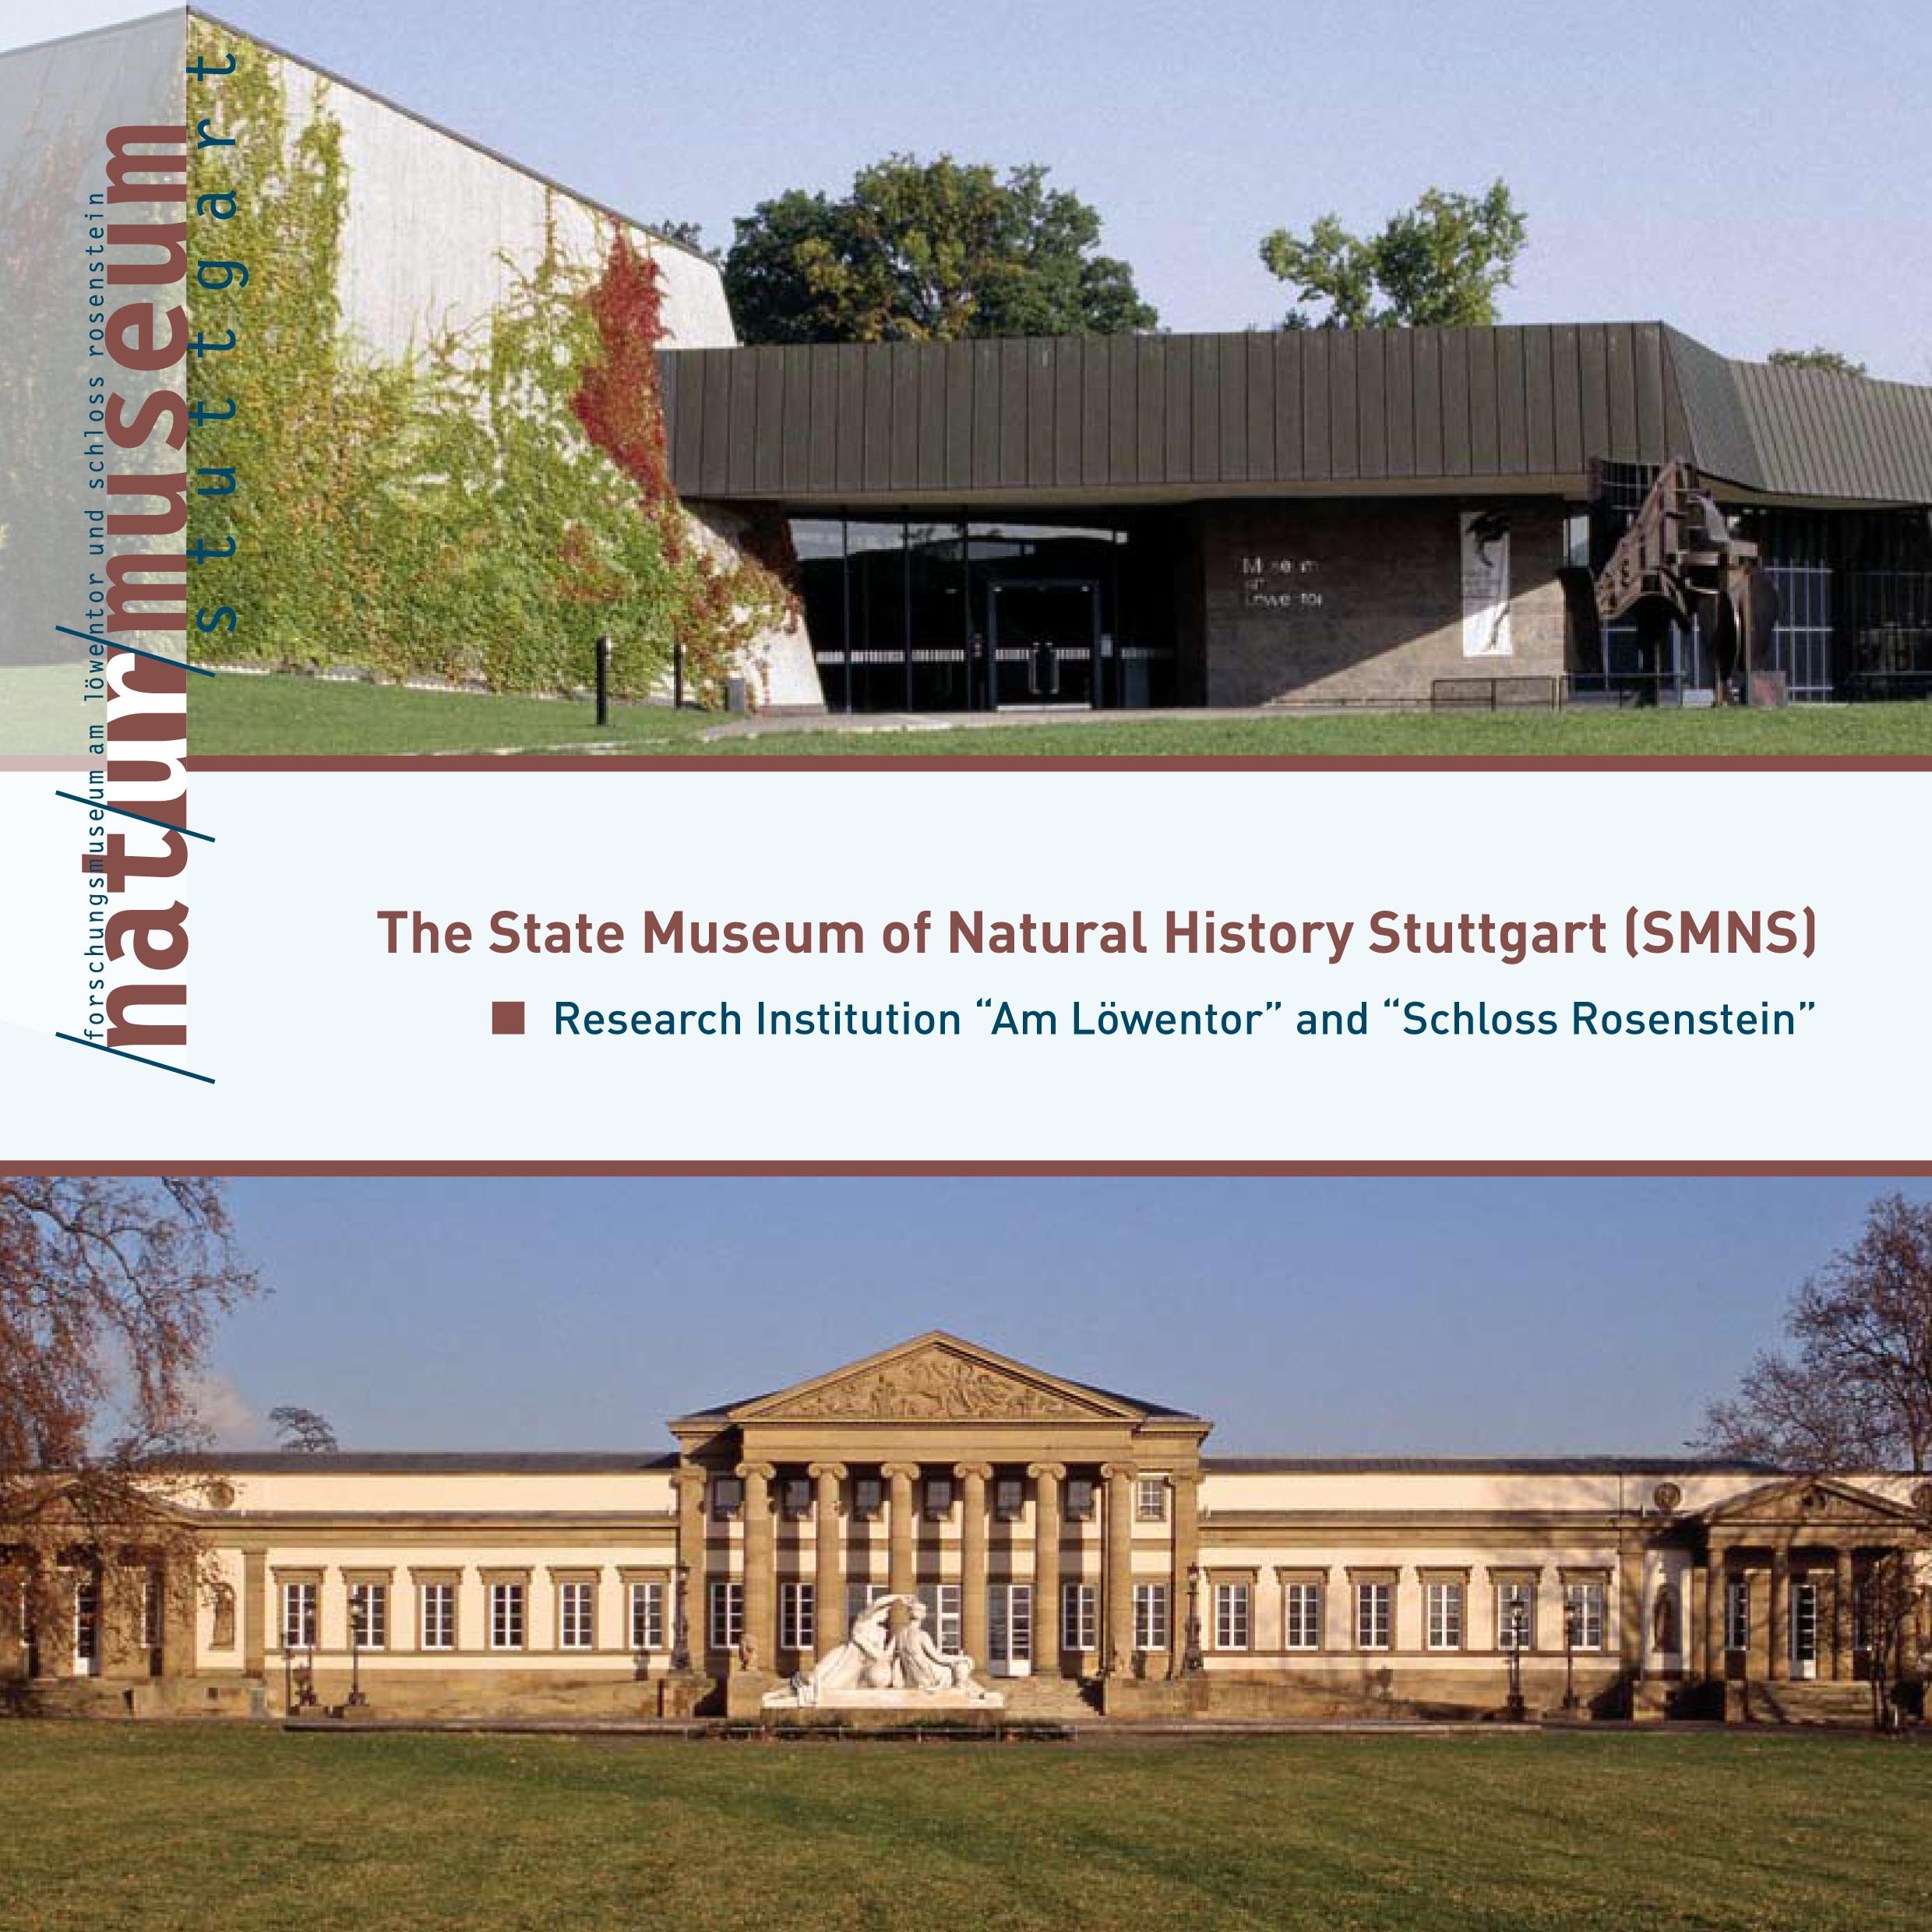 State Museum of Natural History Stuttgart